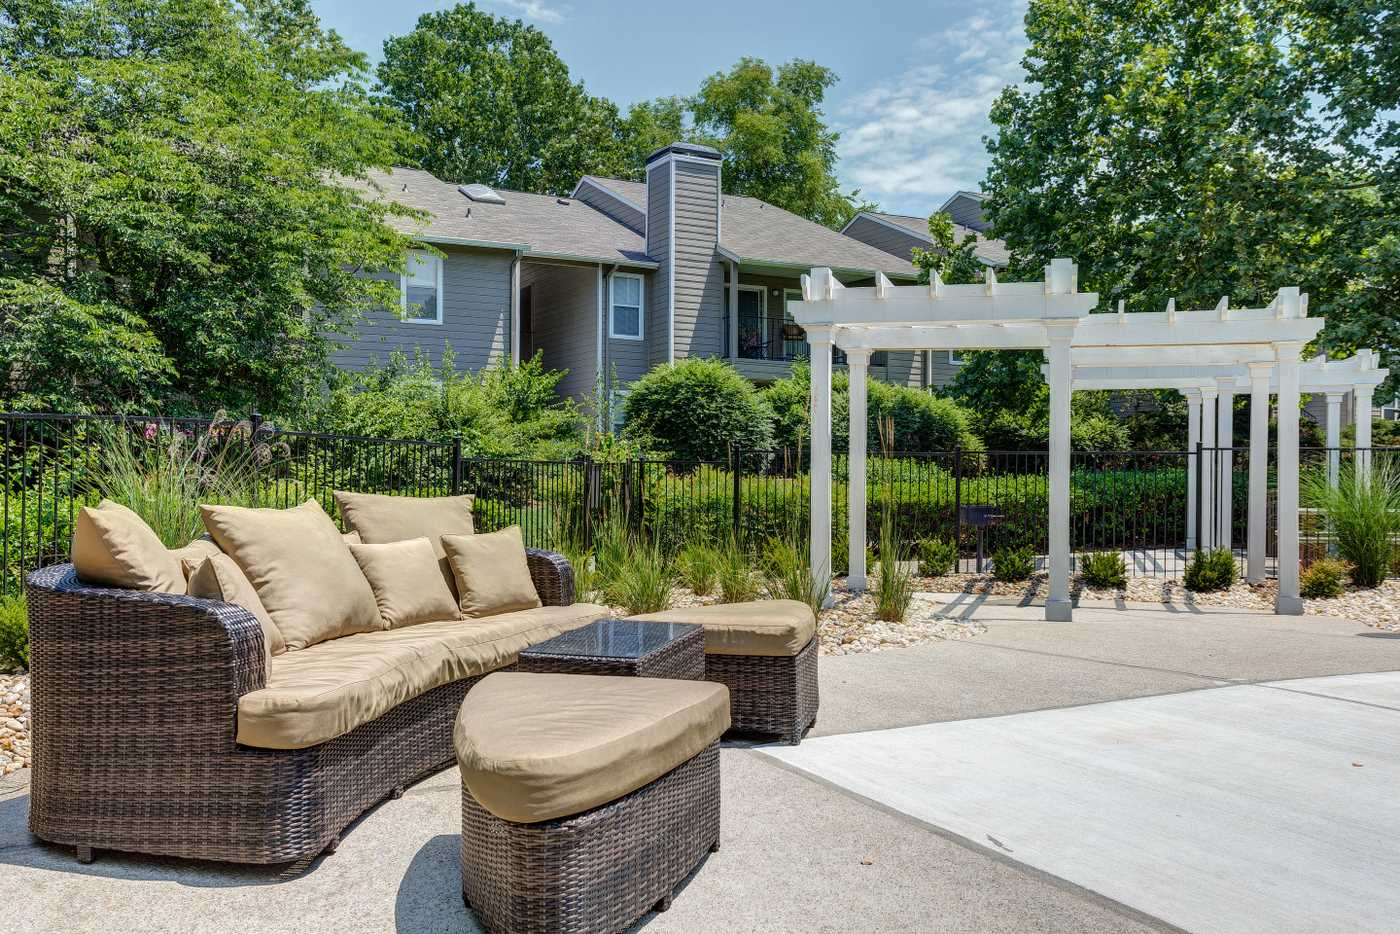 1070 Main Apartment Homes In Hendersonville Tn 37075